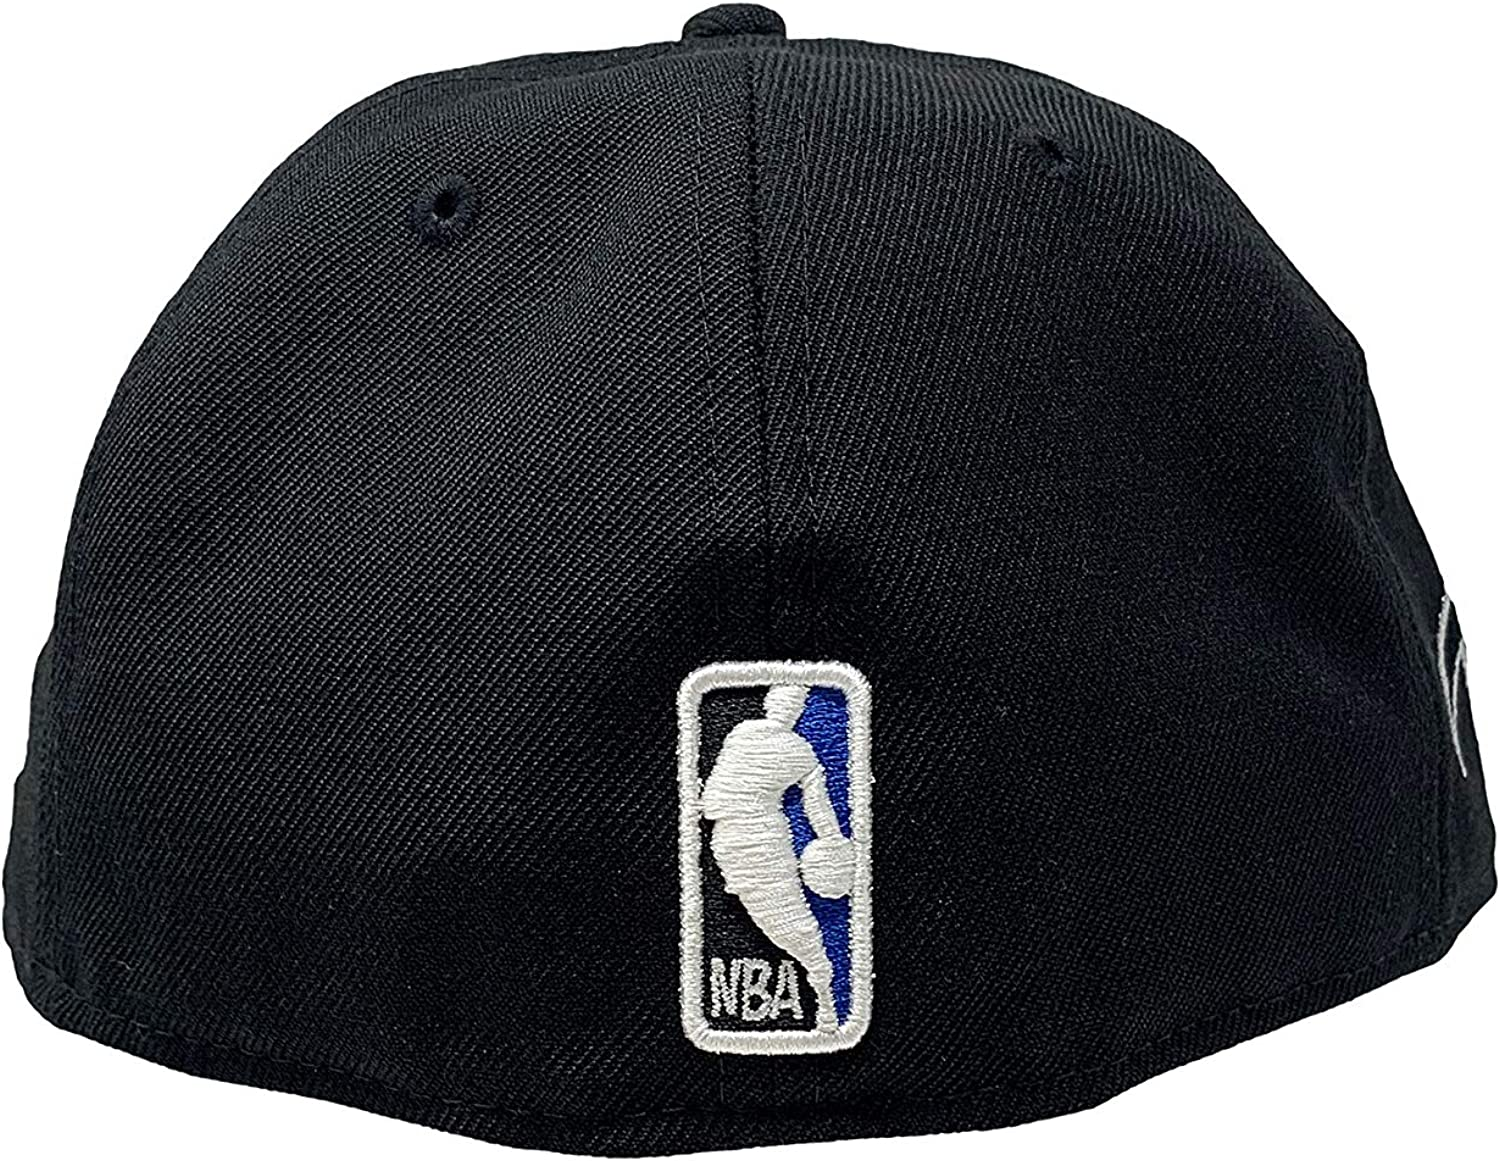 New Era Orlando Magic Fitted Hat 59Fifty NBA Basketball Flat Bill Caps